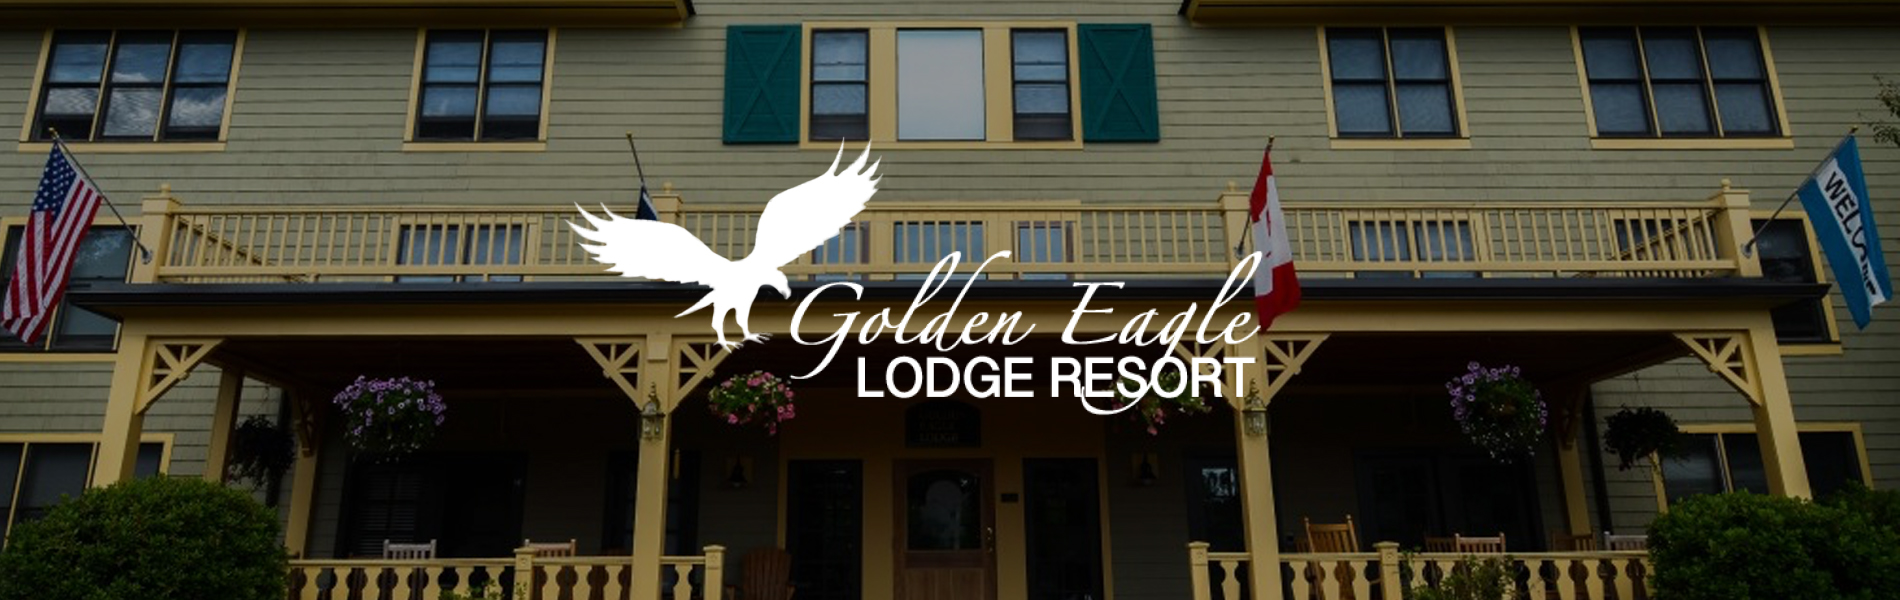 The Golden Eagle Lodge Resort is the perfect place to relax during your White Mountain Vacation